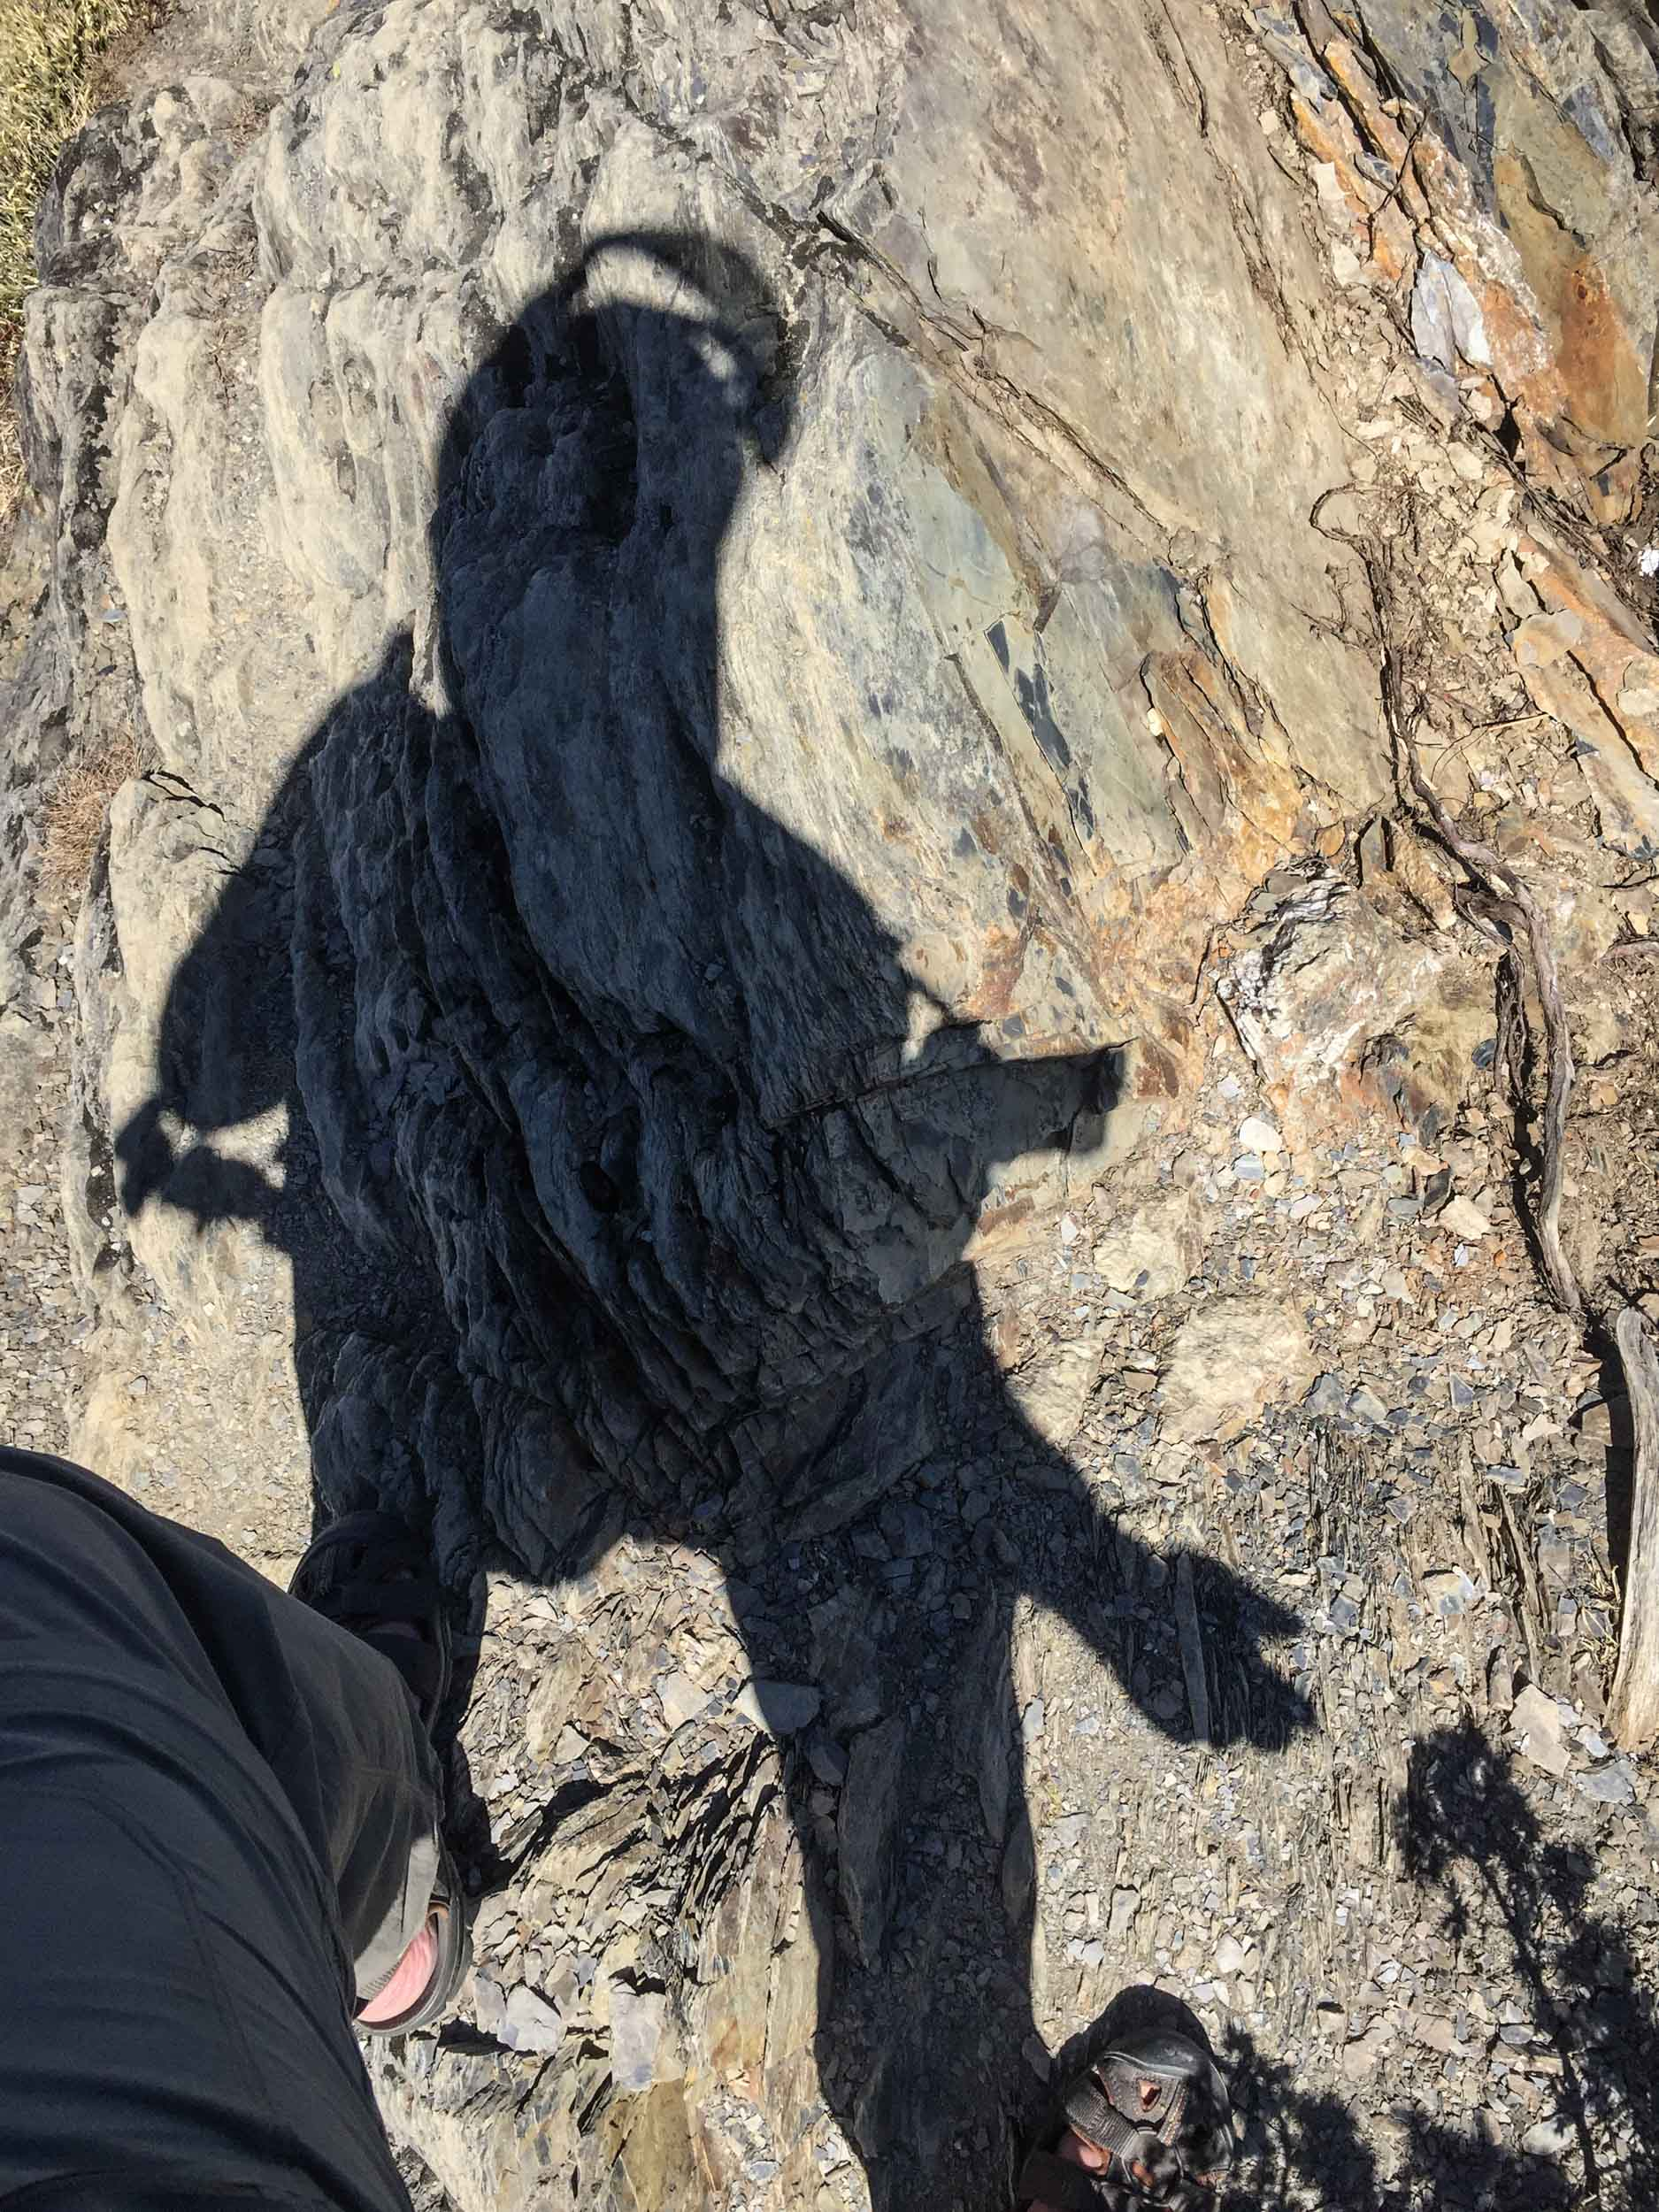 It was only when I spotted my shadow that I realised that yet again I had walked 15 minutes to the top of a view point whilst still wearing my motorcycle helmet. What a helmet!!!